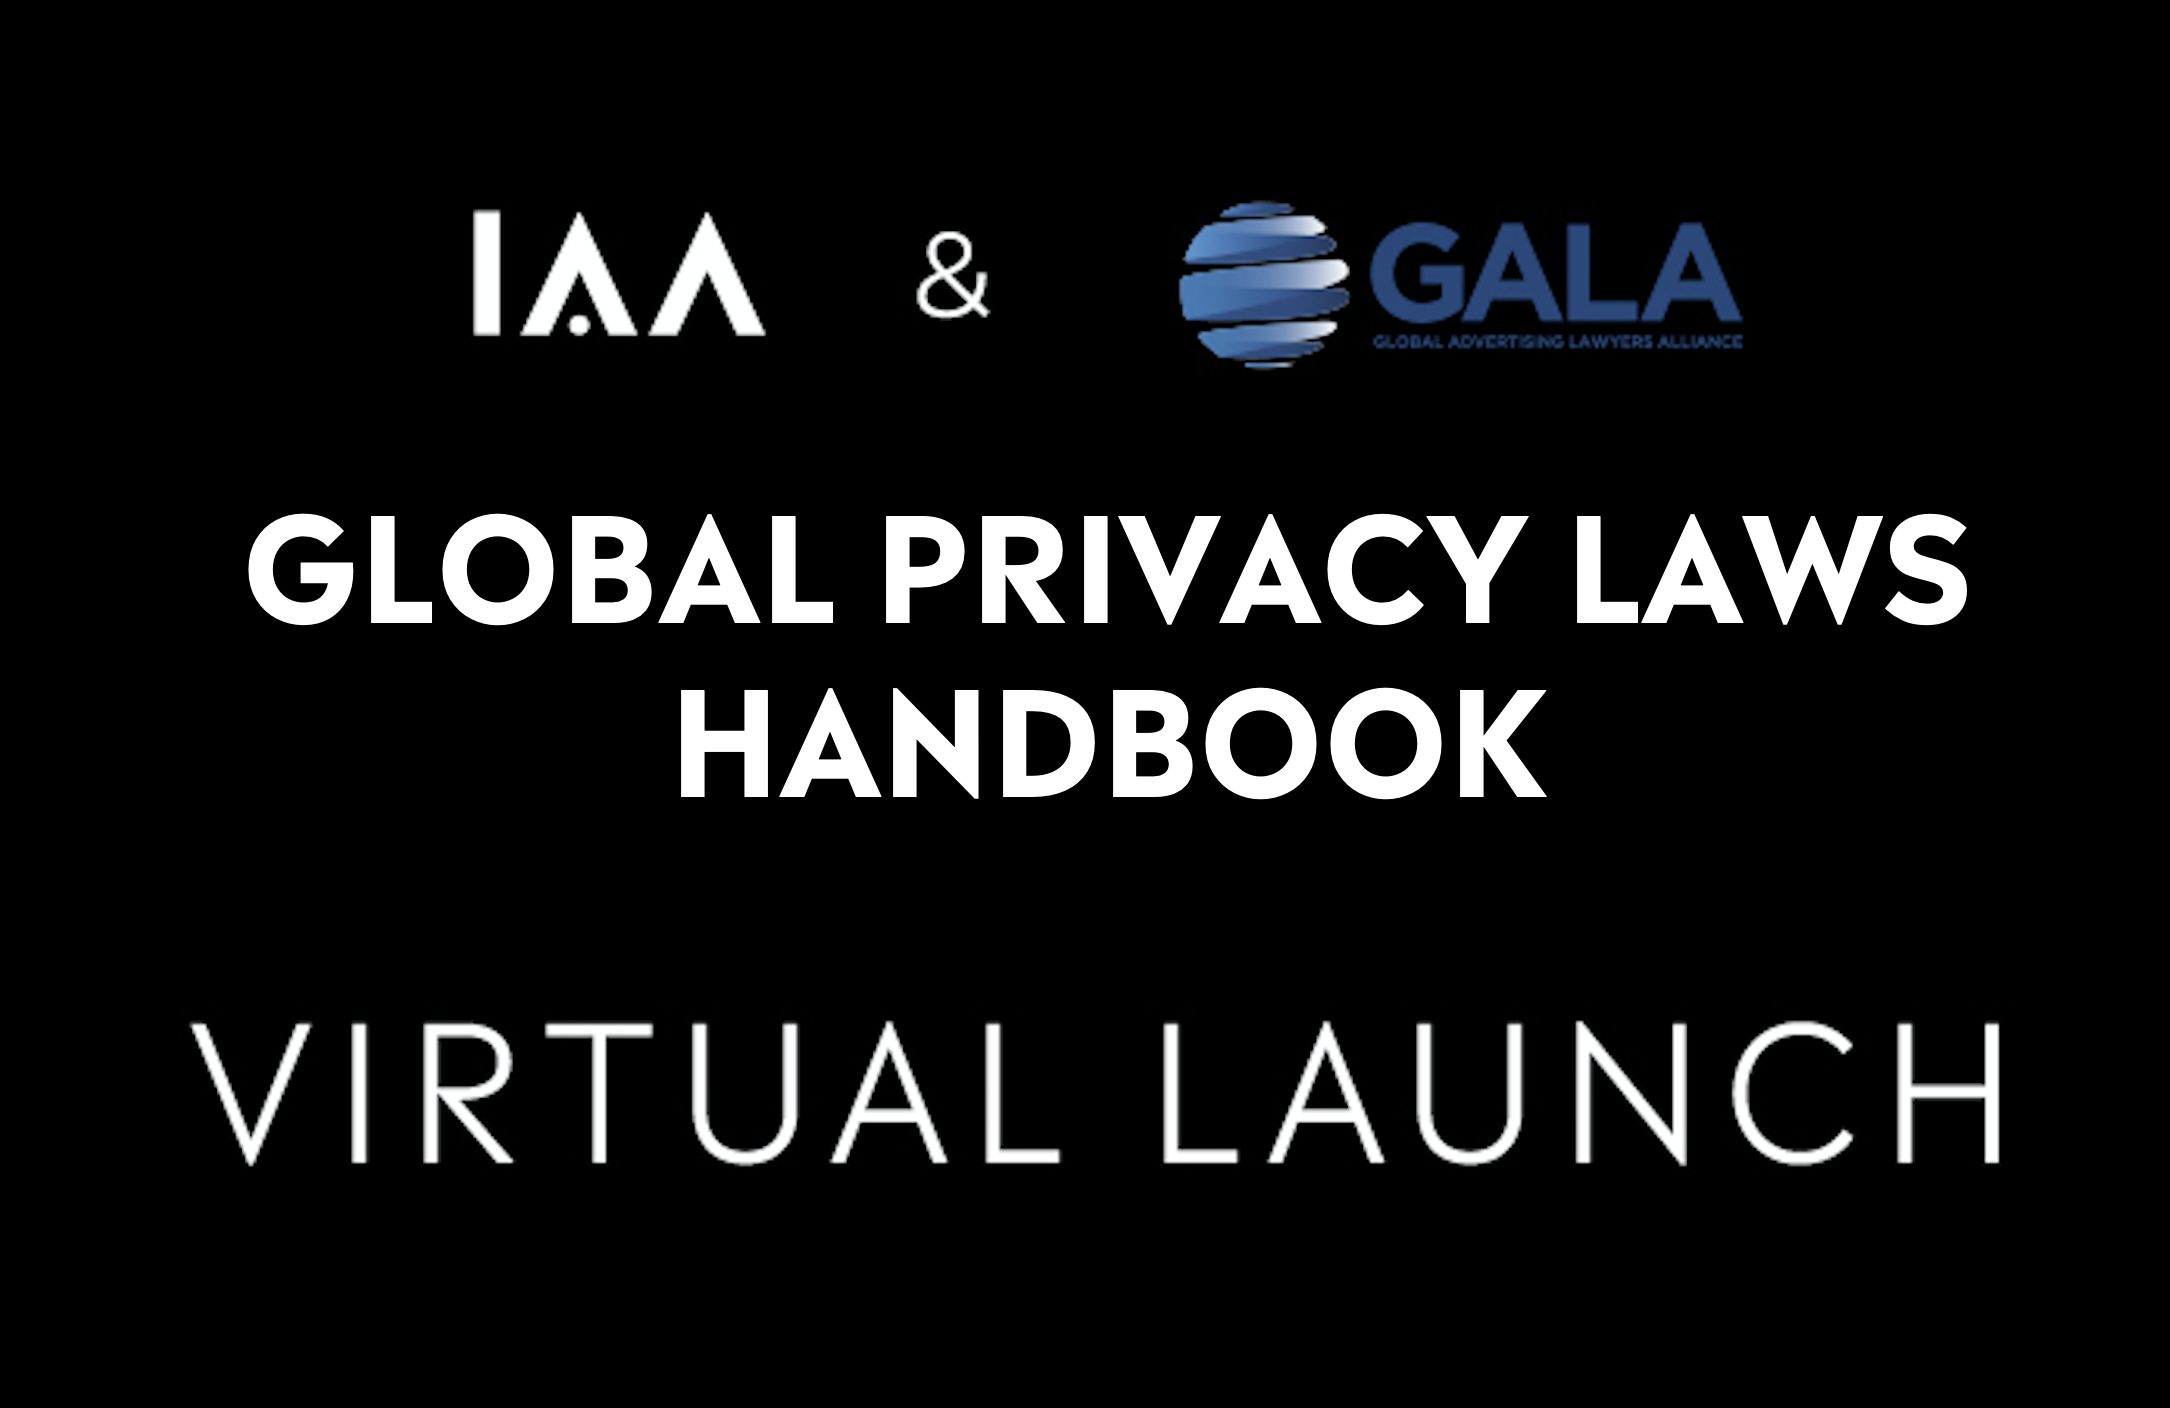 Global Privacy Laws Handbook